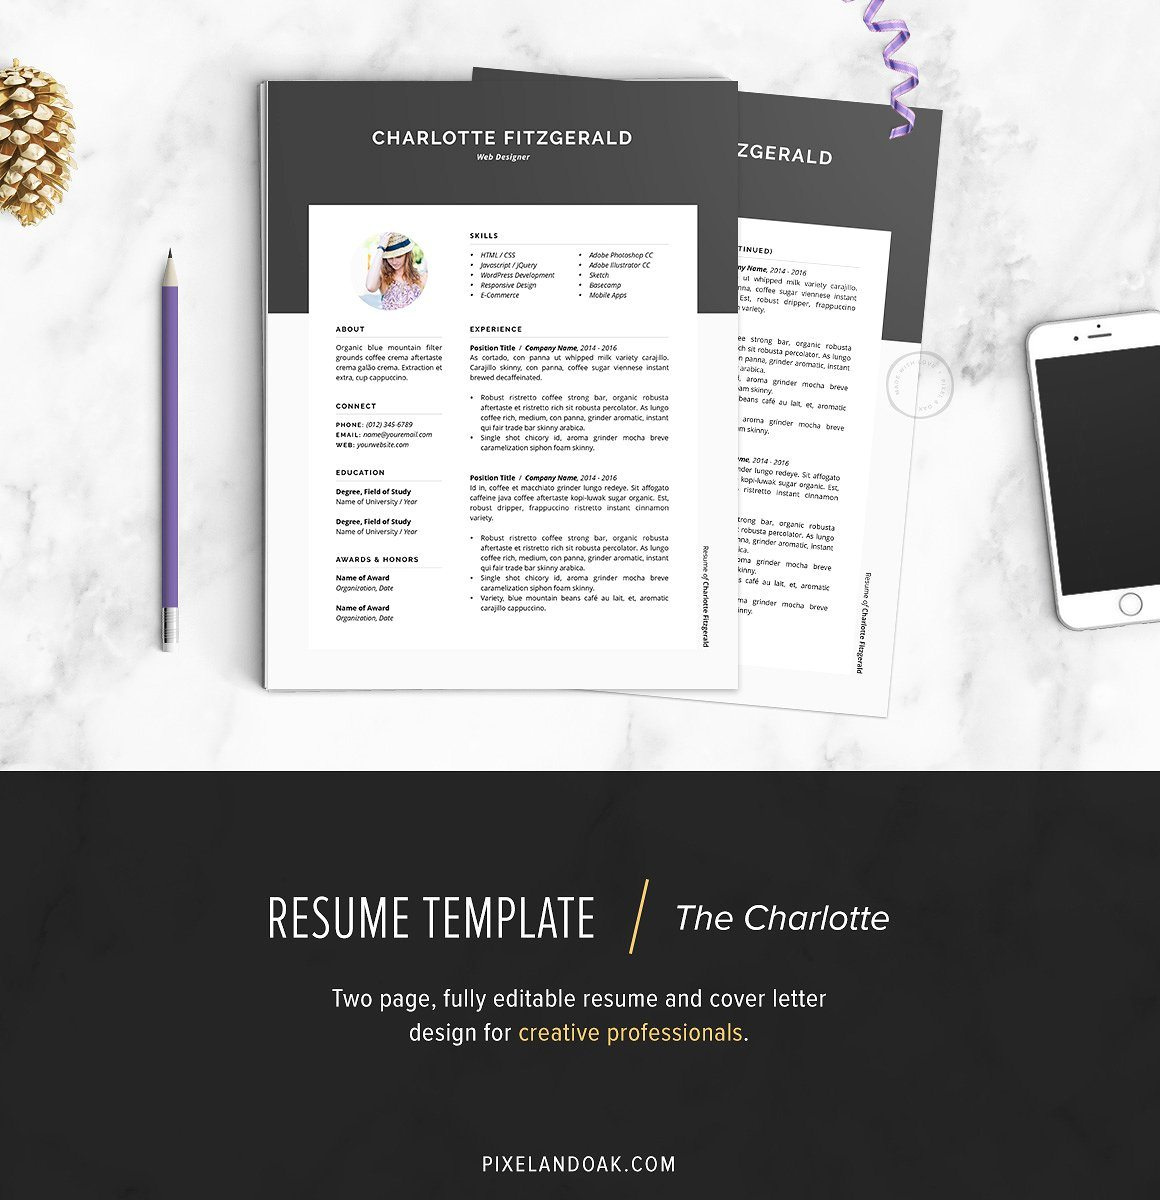 Resume-Template-The-Charlotte 20+ Best Pages Resume & CV Templates design tips